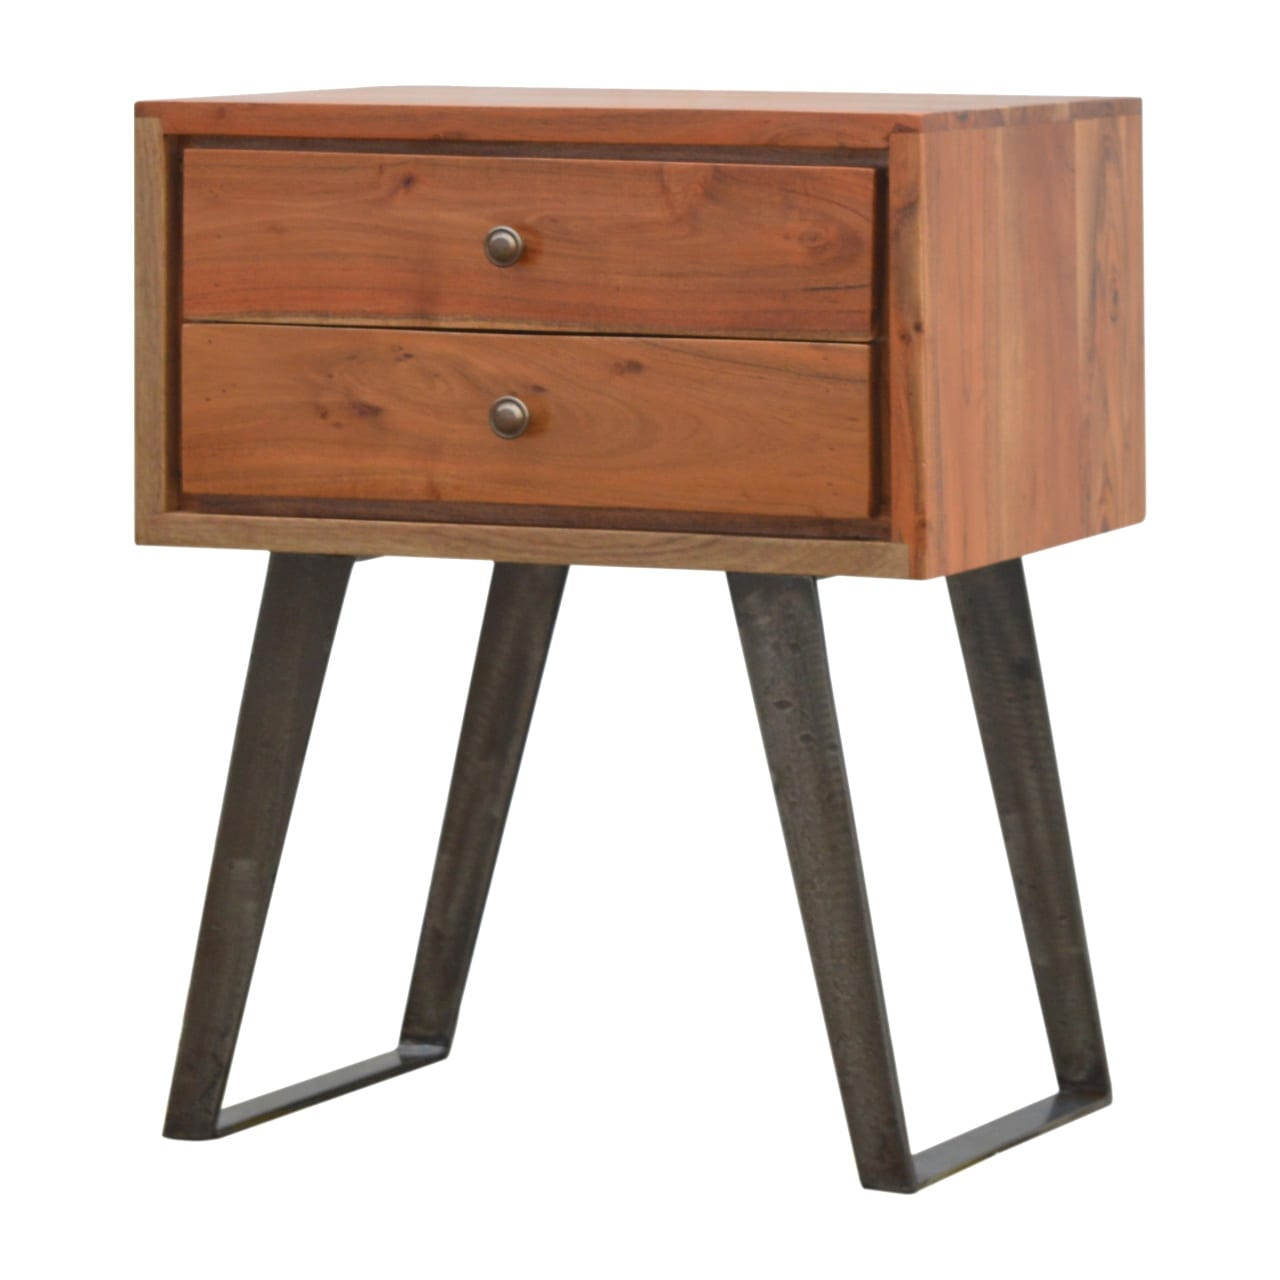 Solid Wood Bedside Table With Iron Legs Scottish Antique Arts Centre